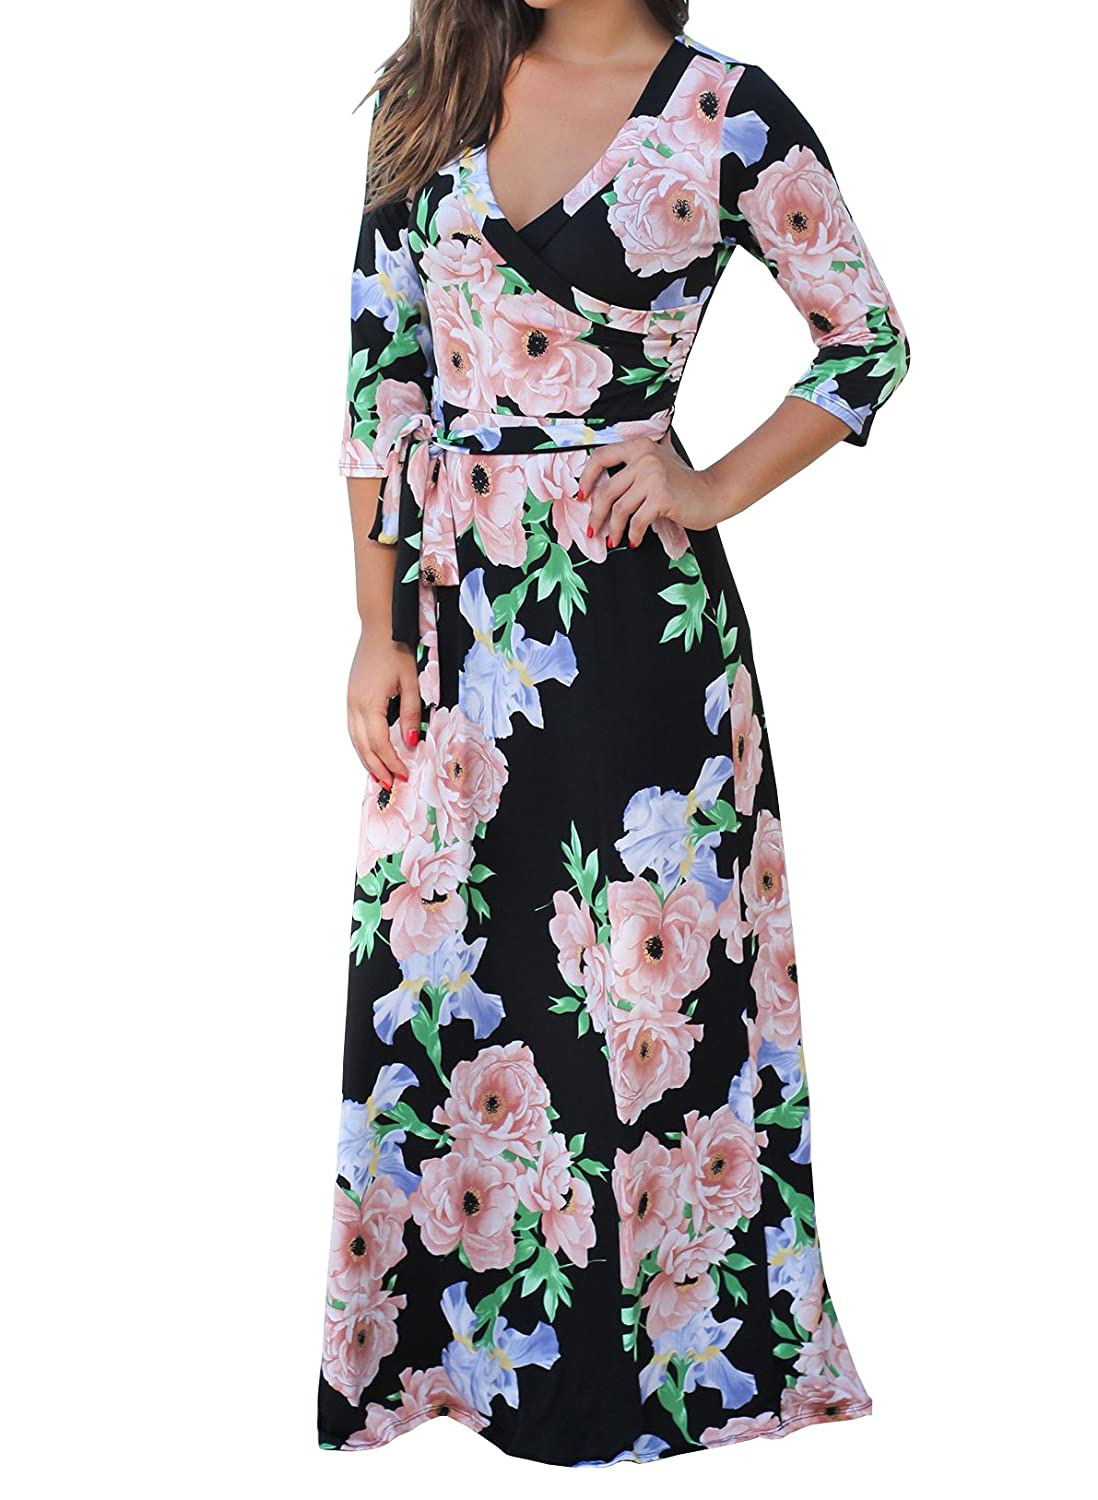 282875bd69f99 Clothing Length:Floral length,Maxi,Long Waist:Empire waist,Belt  Color:Printed Style:Casual,Summer,Beach,Boho,Party Season:All Package  include:1x Women dress ...